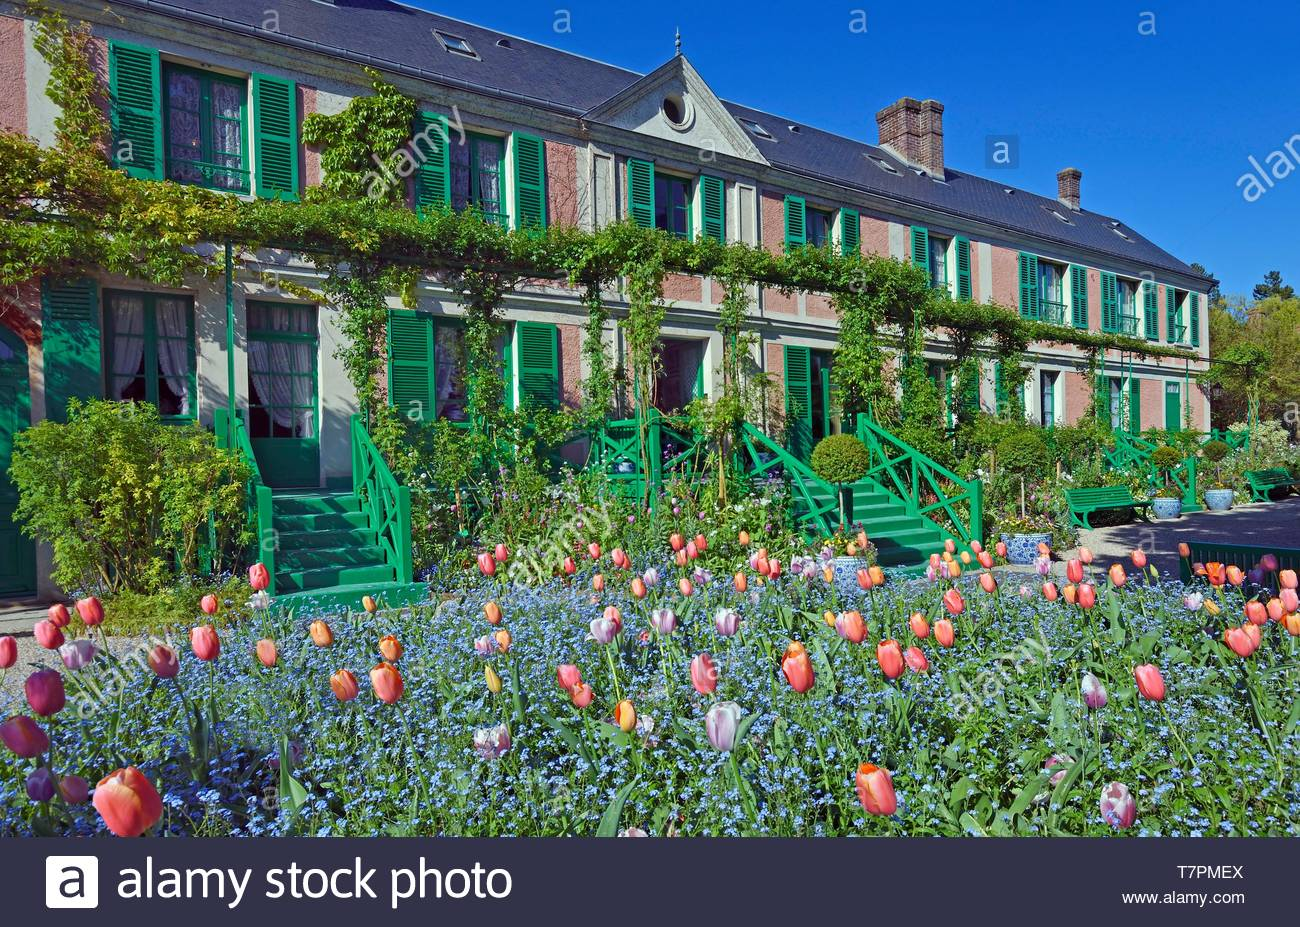 france eure giverny claude monet foundation claude monets house and the clos normand gardens T7PMEX